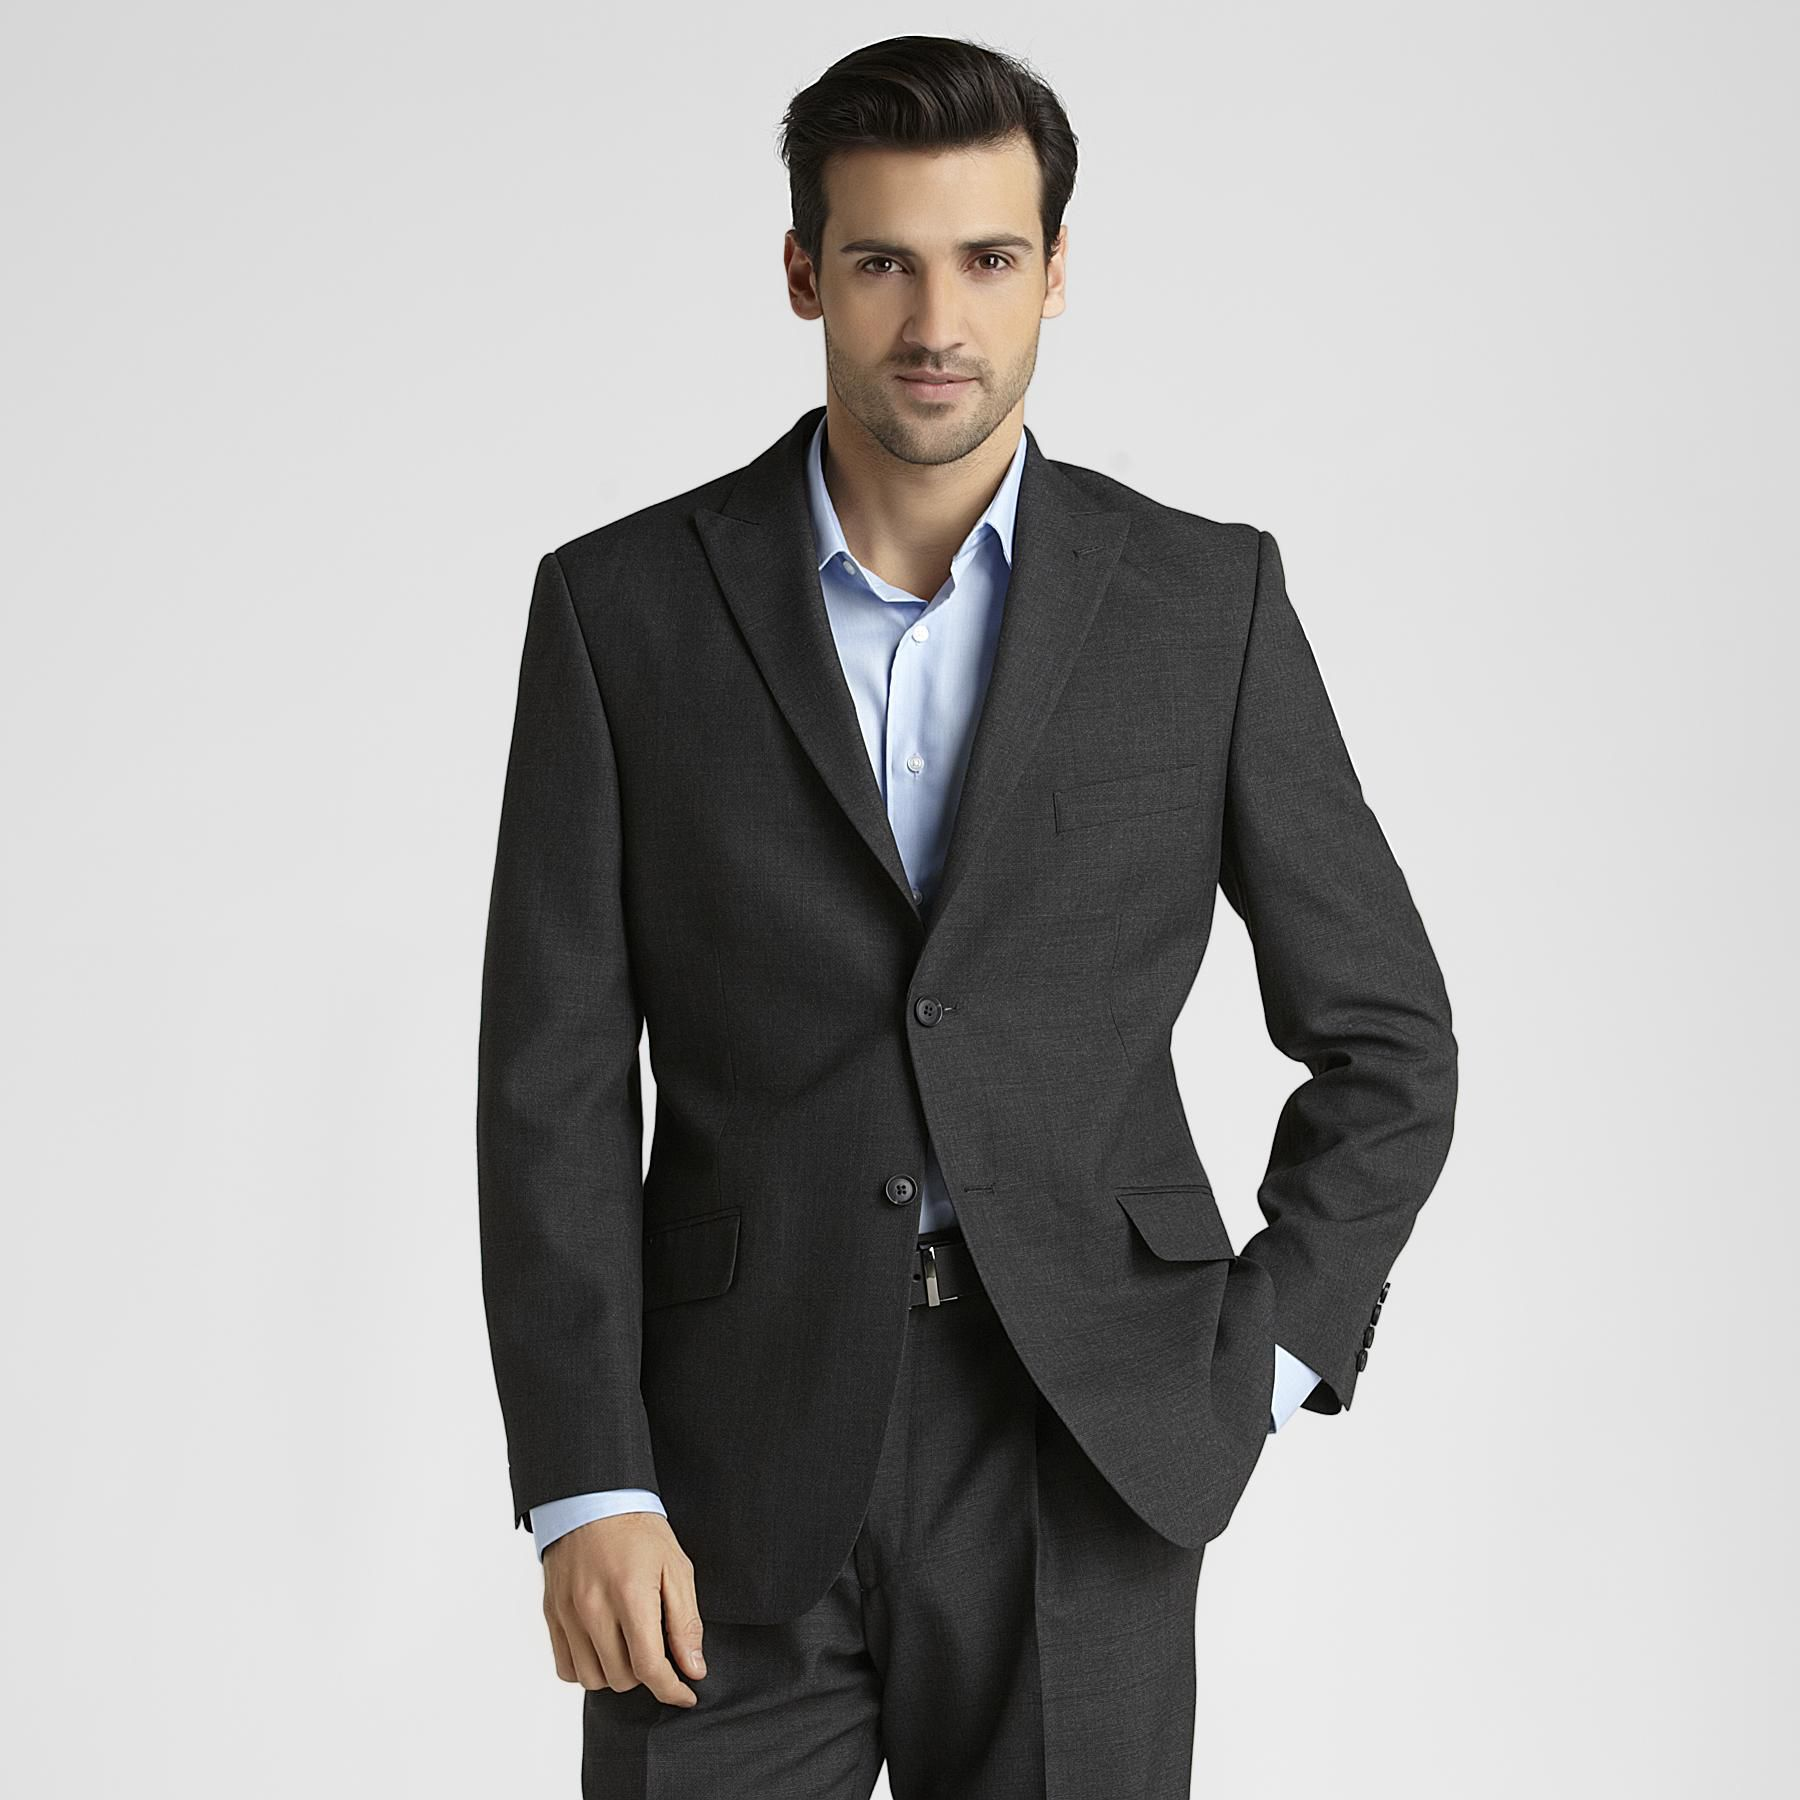 Haggar Men's Classic Fit Suit Coat at Sears.com